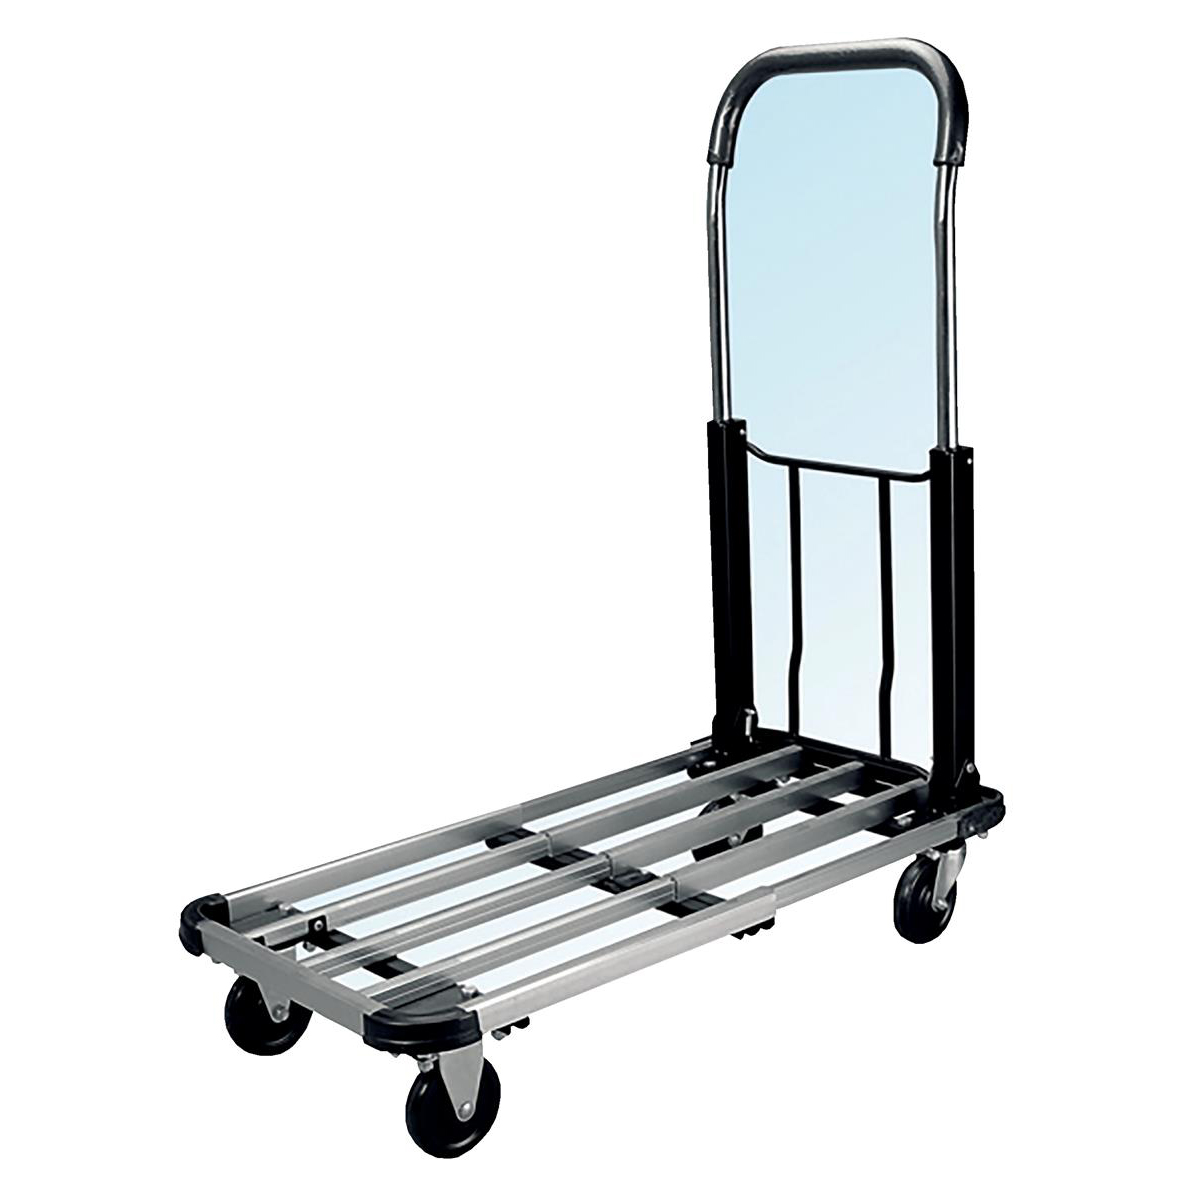 5 Star Facilities Platform Truck Lightweight Aluminium Adjustable Capacity 100kg W400xL500-720mm